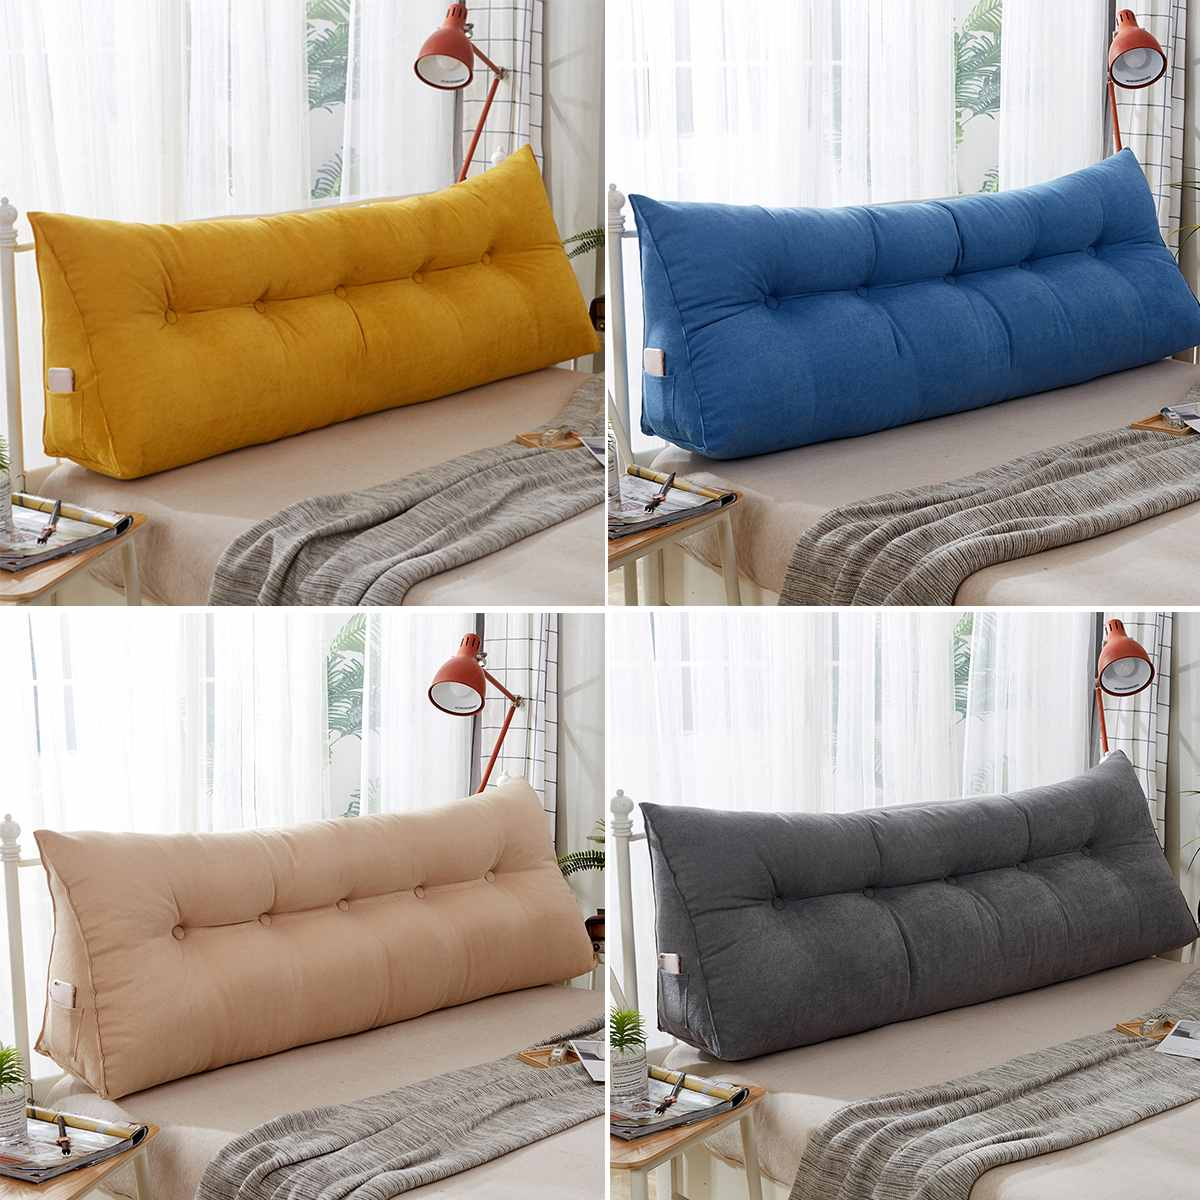 triangular backrest cushion sofa cushions bed rest pillow back support tatami sofy removable sleeping pillow 3 size